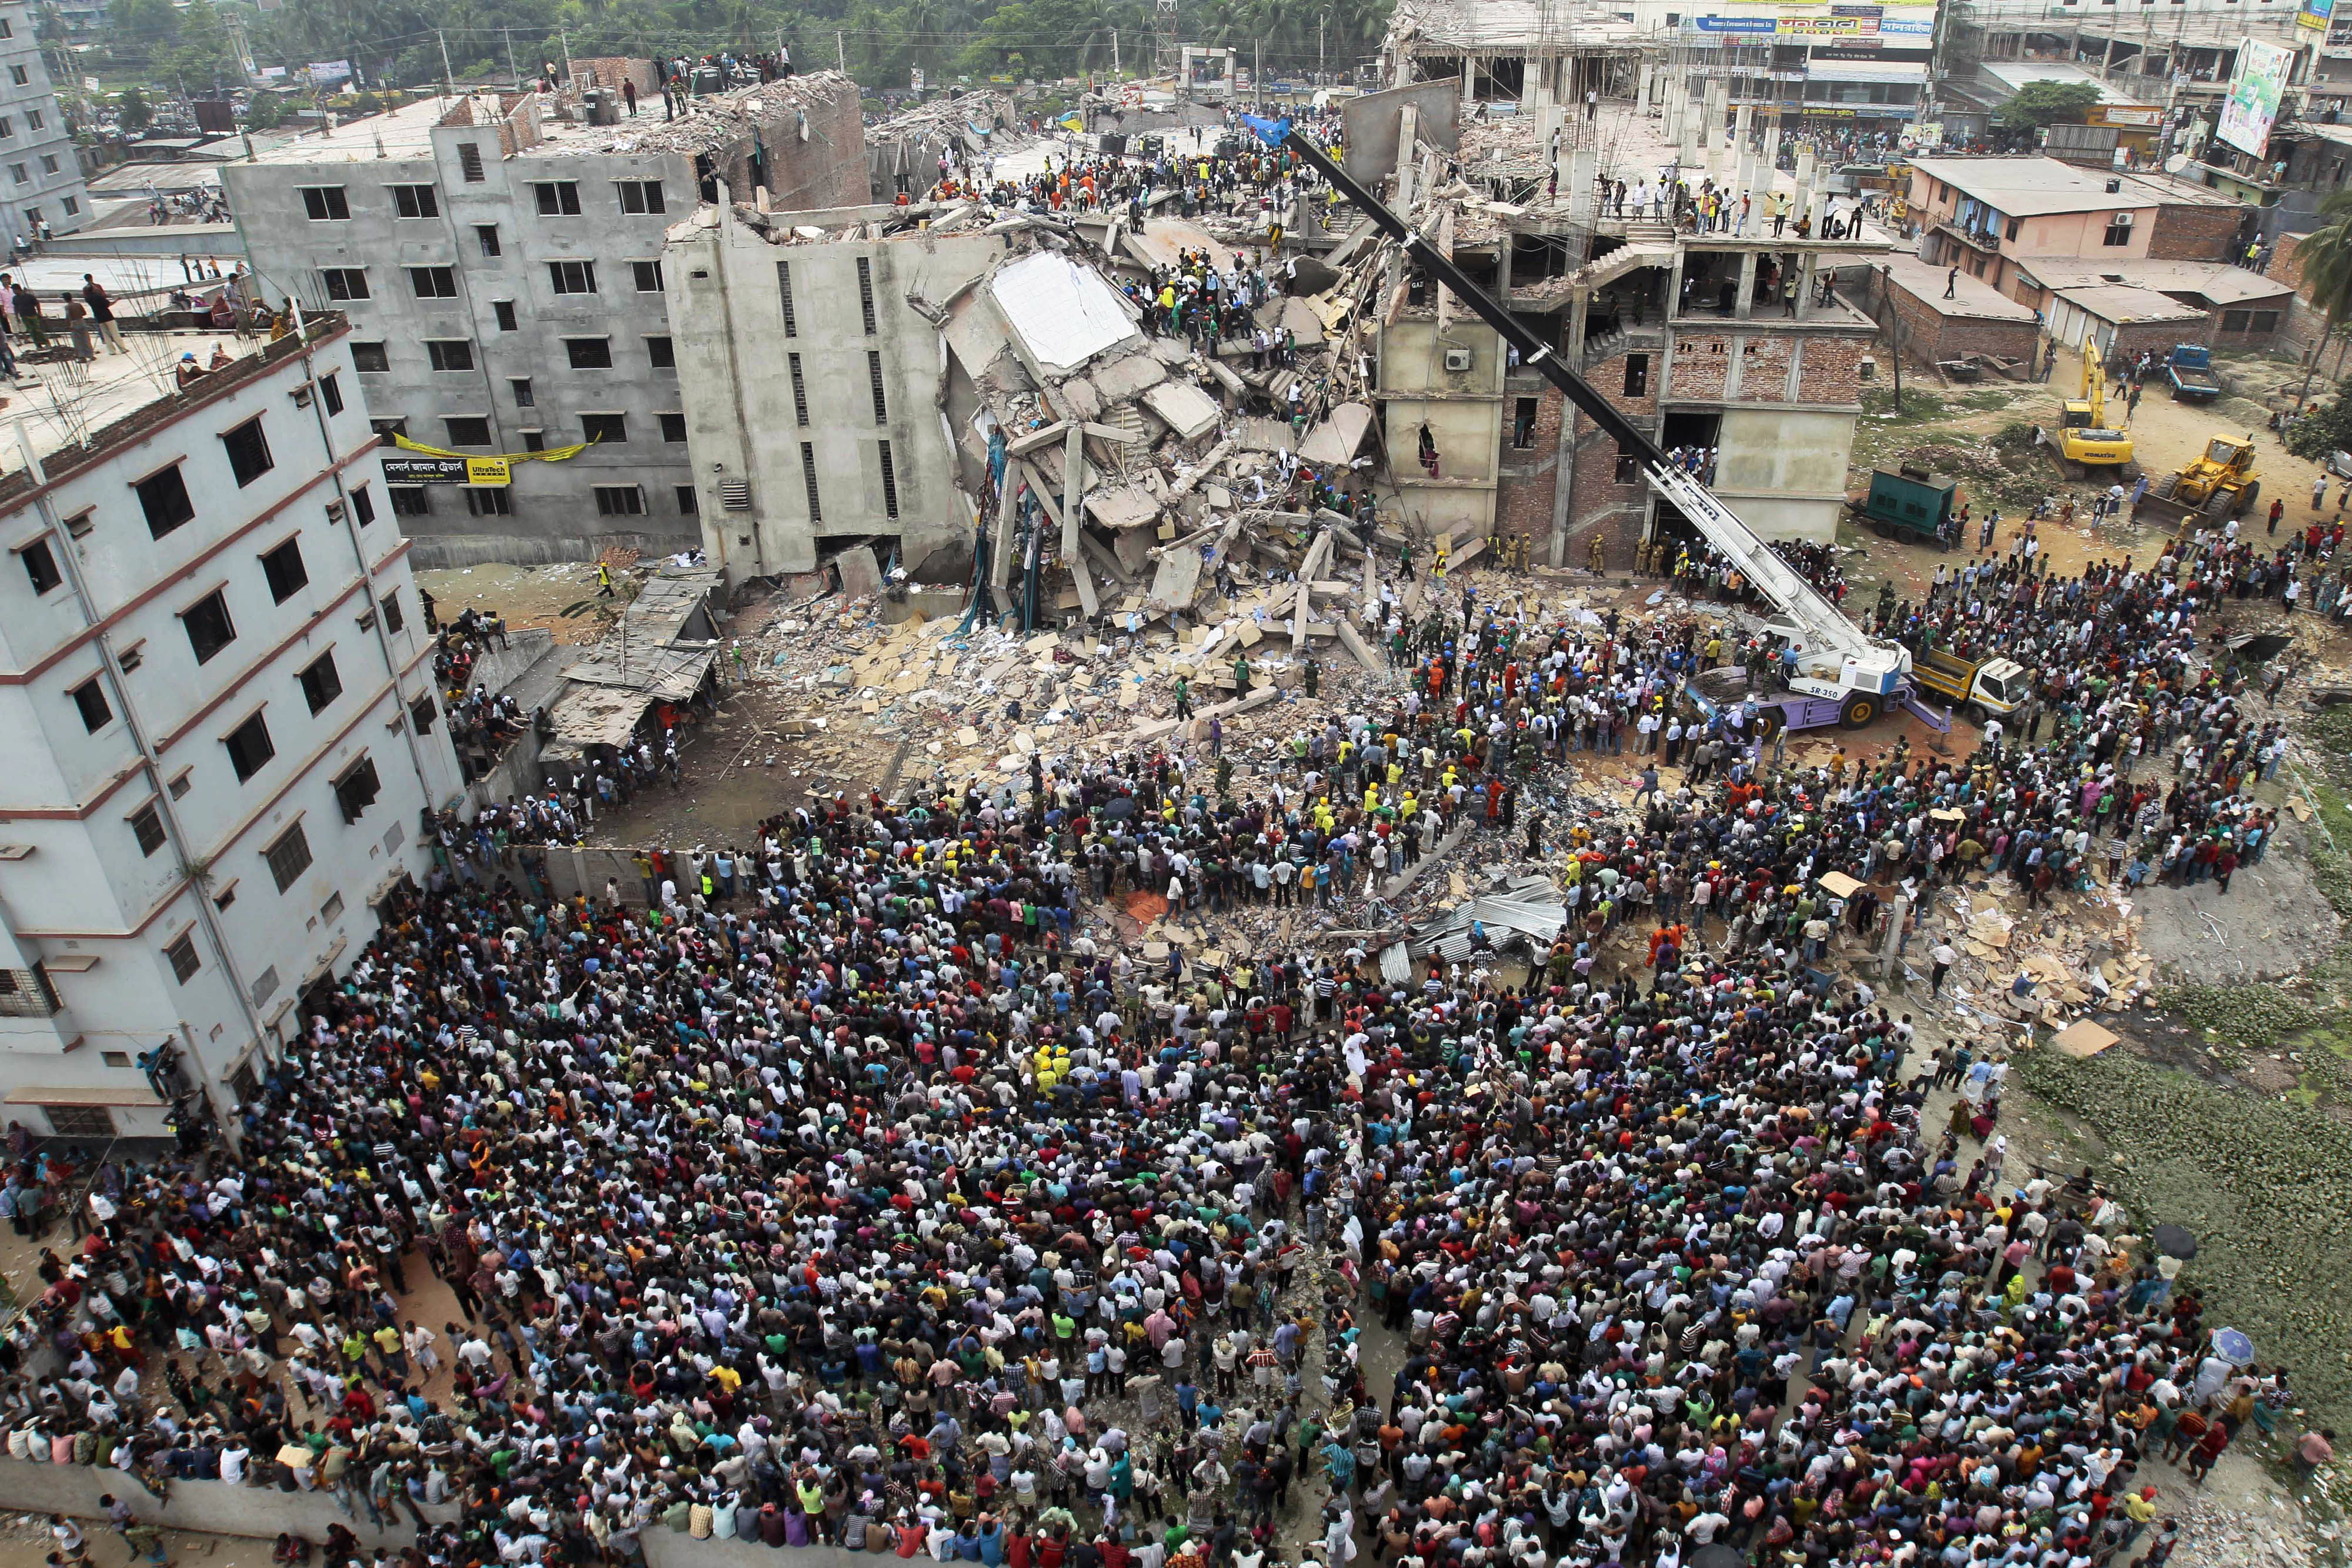 FILE - In this April 25, 2013, file photo, Bangladeshi people gather as rescuers look for survivors and victims at the site of a building that collapsed a day earlier, in Savar, near Dhaka, Bangladesh. A Bangladesh court on Monday, July 18, 2016, indicted 41 people for murder in the 2013 deaths of more than 1,100 people in the collapse of a building that housed five garment factories outside the capital. (AP Photo/A.M.Ahad, File)